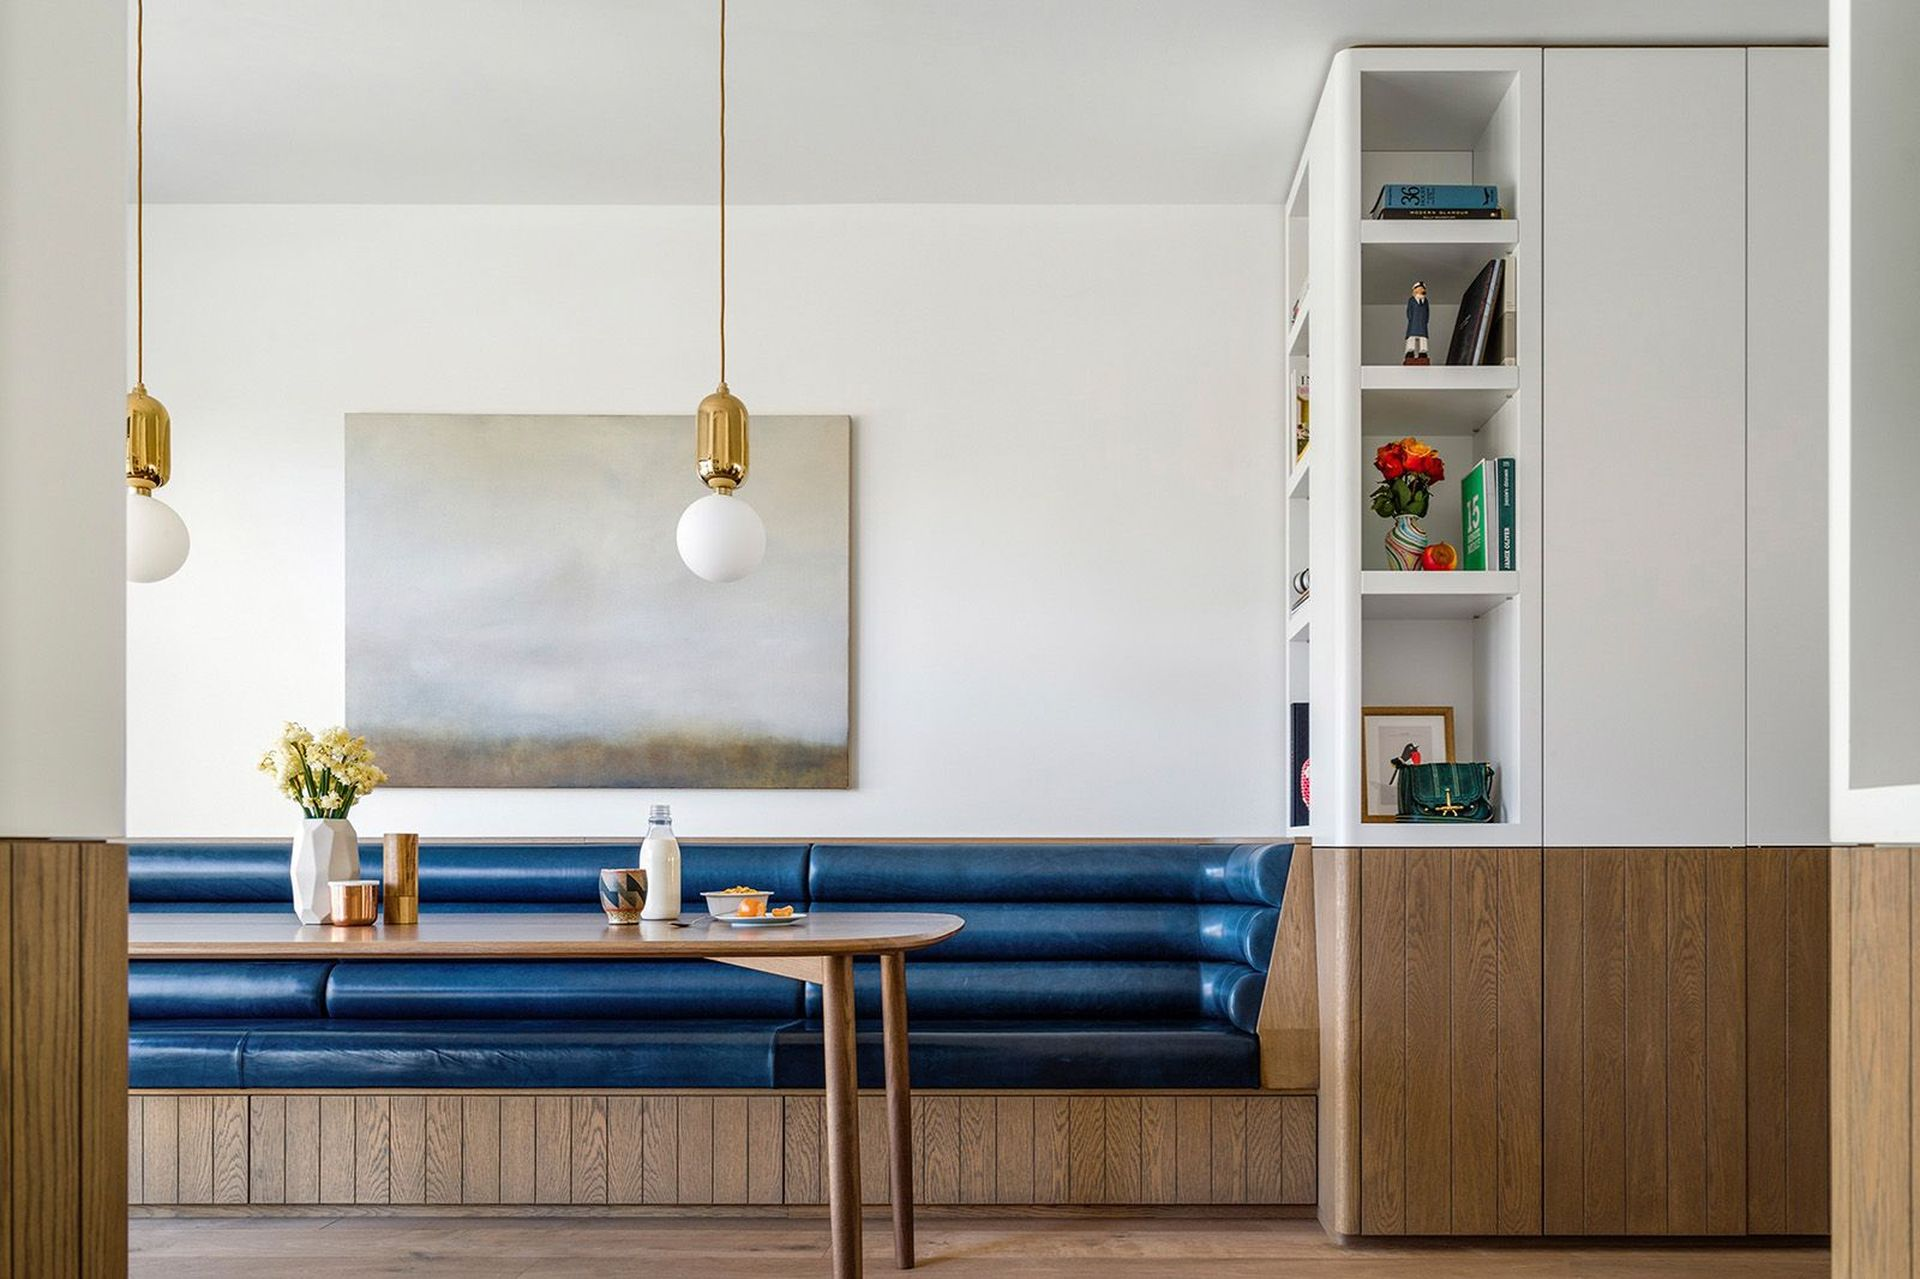 Home Makeover in a Mid-Century Modern Residence in Sydney! home makeover Home Makeover in a Mid-Century Modern Residence in Sydney! Home Makeover in a Mid Century Modern Residence in Sydney 4